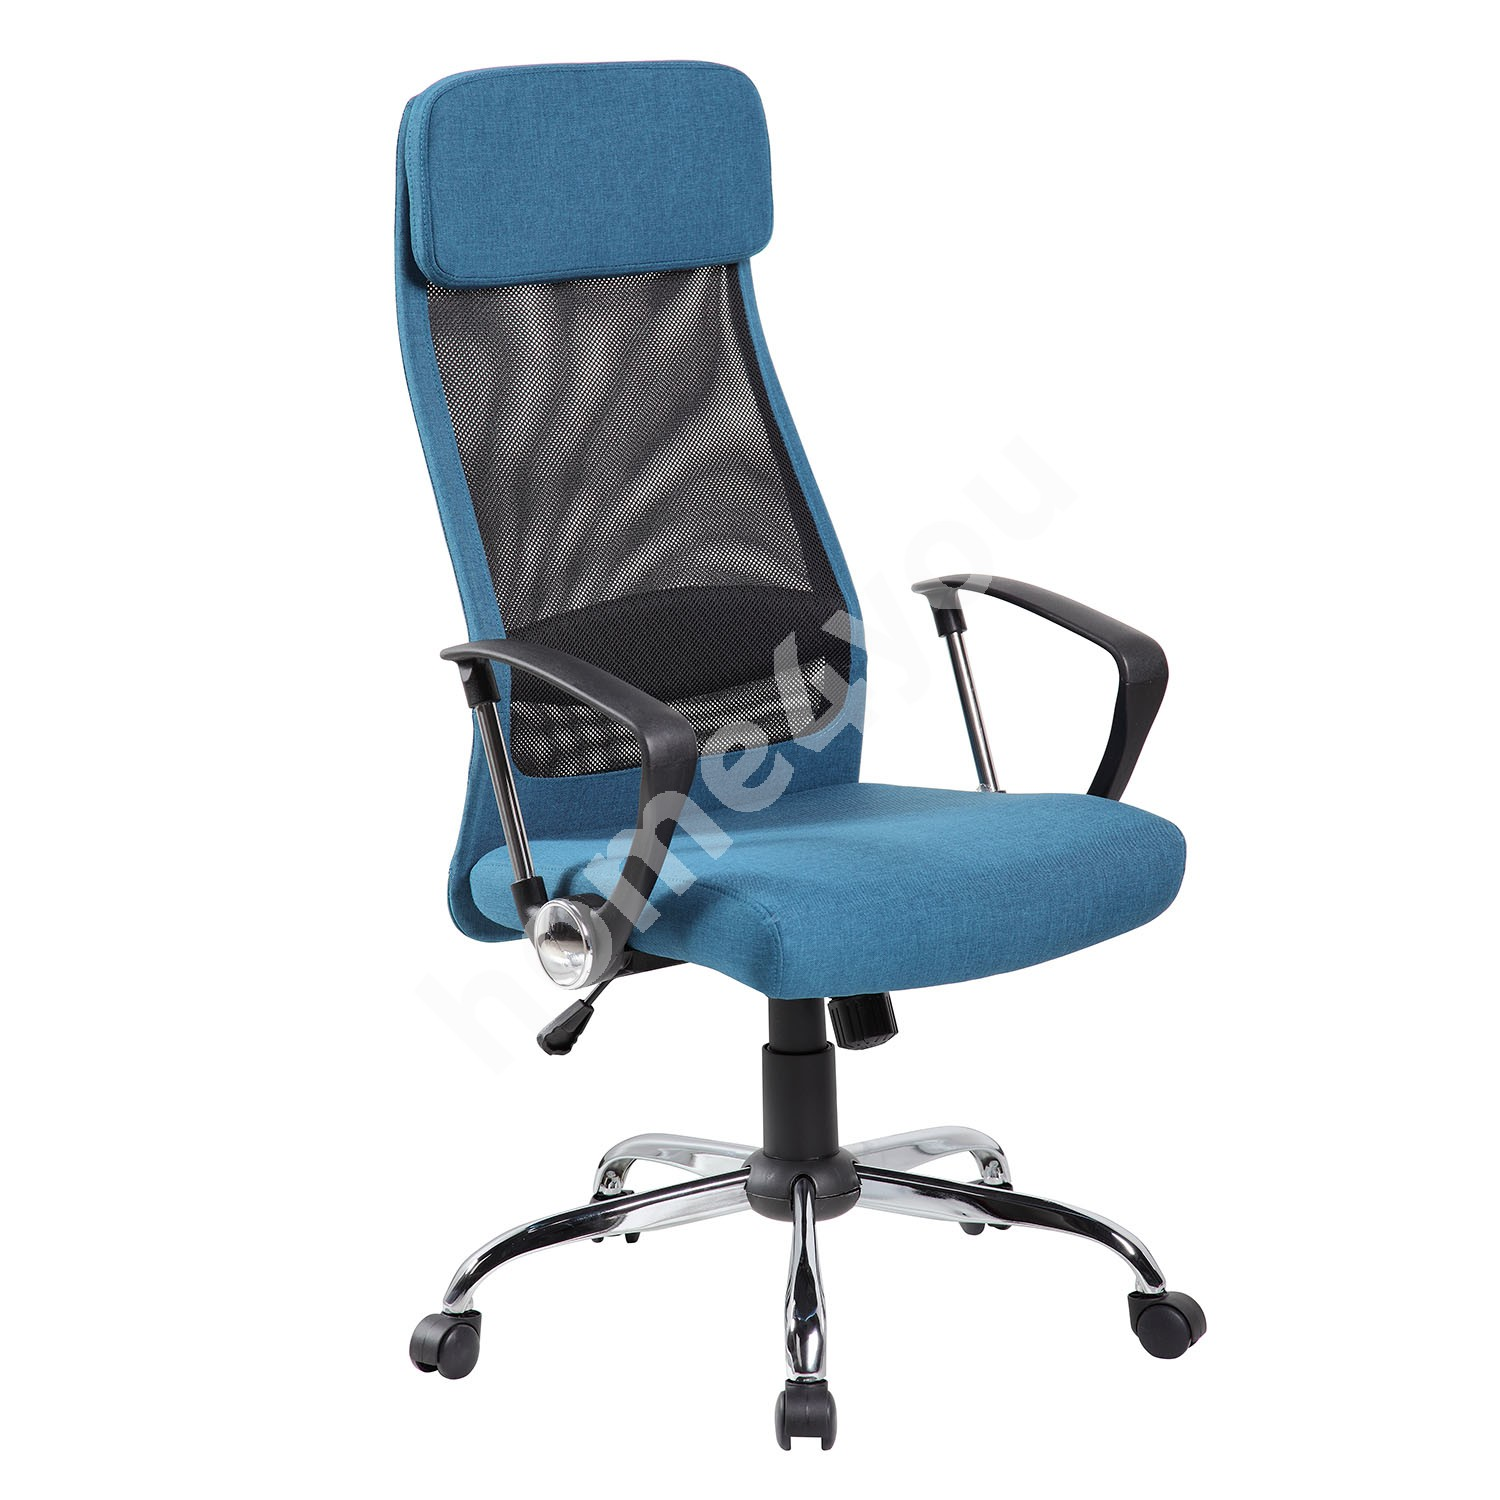 Task chair DARLA 62x63xH116-126cm, seat and back rest: fabric / mesh fabric, color: blue